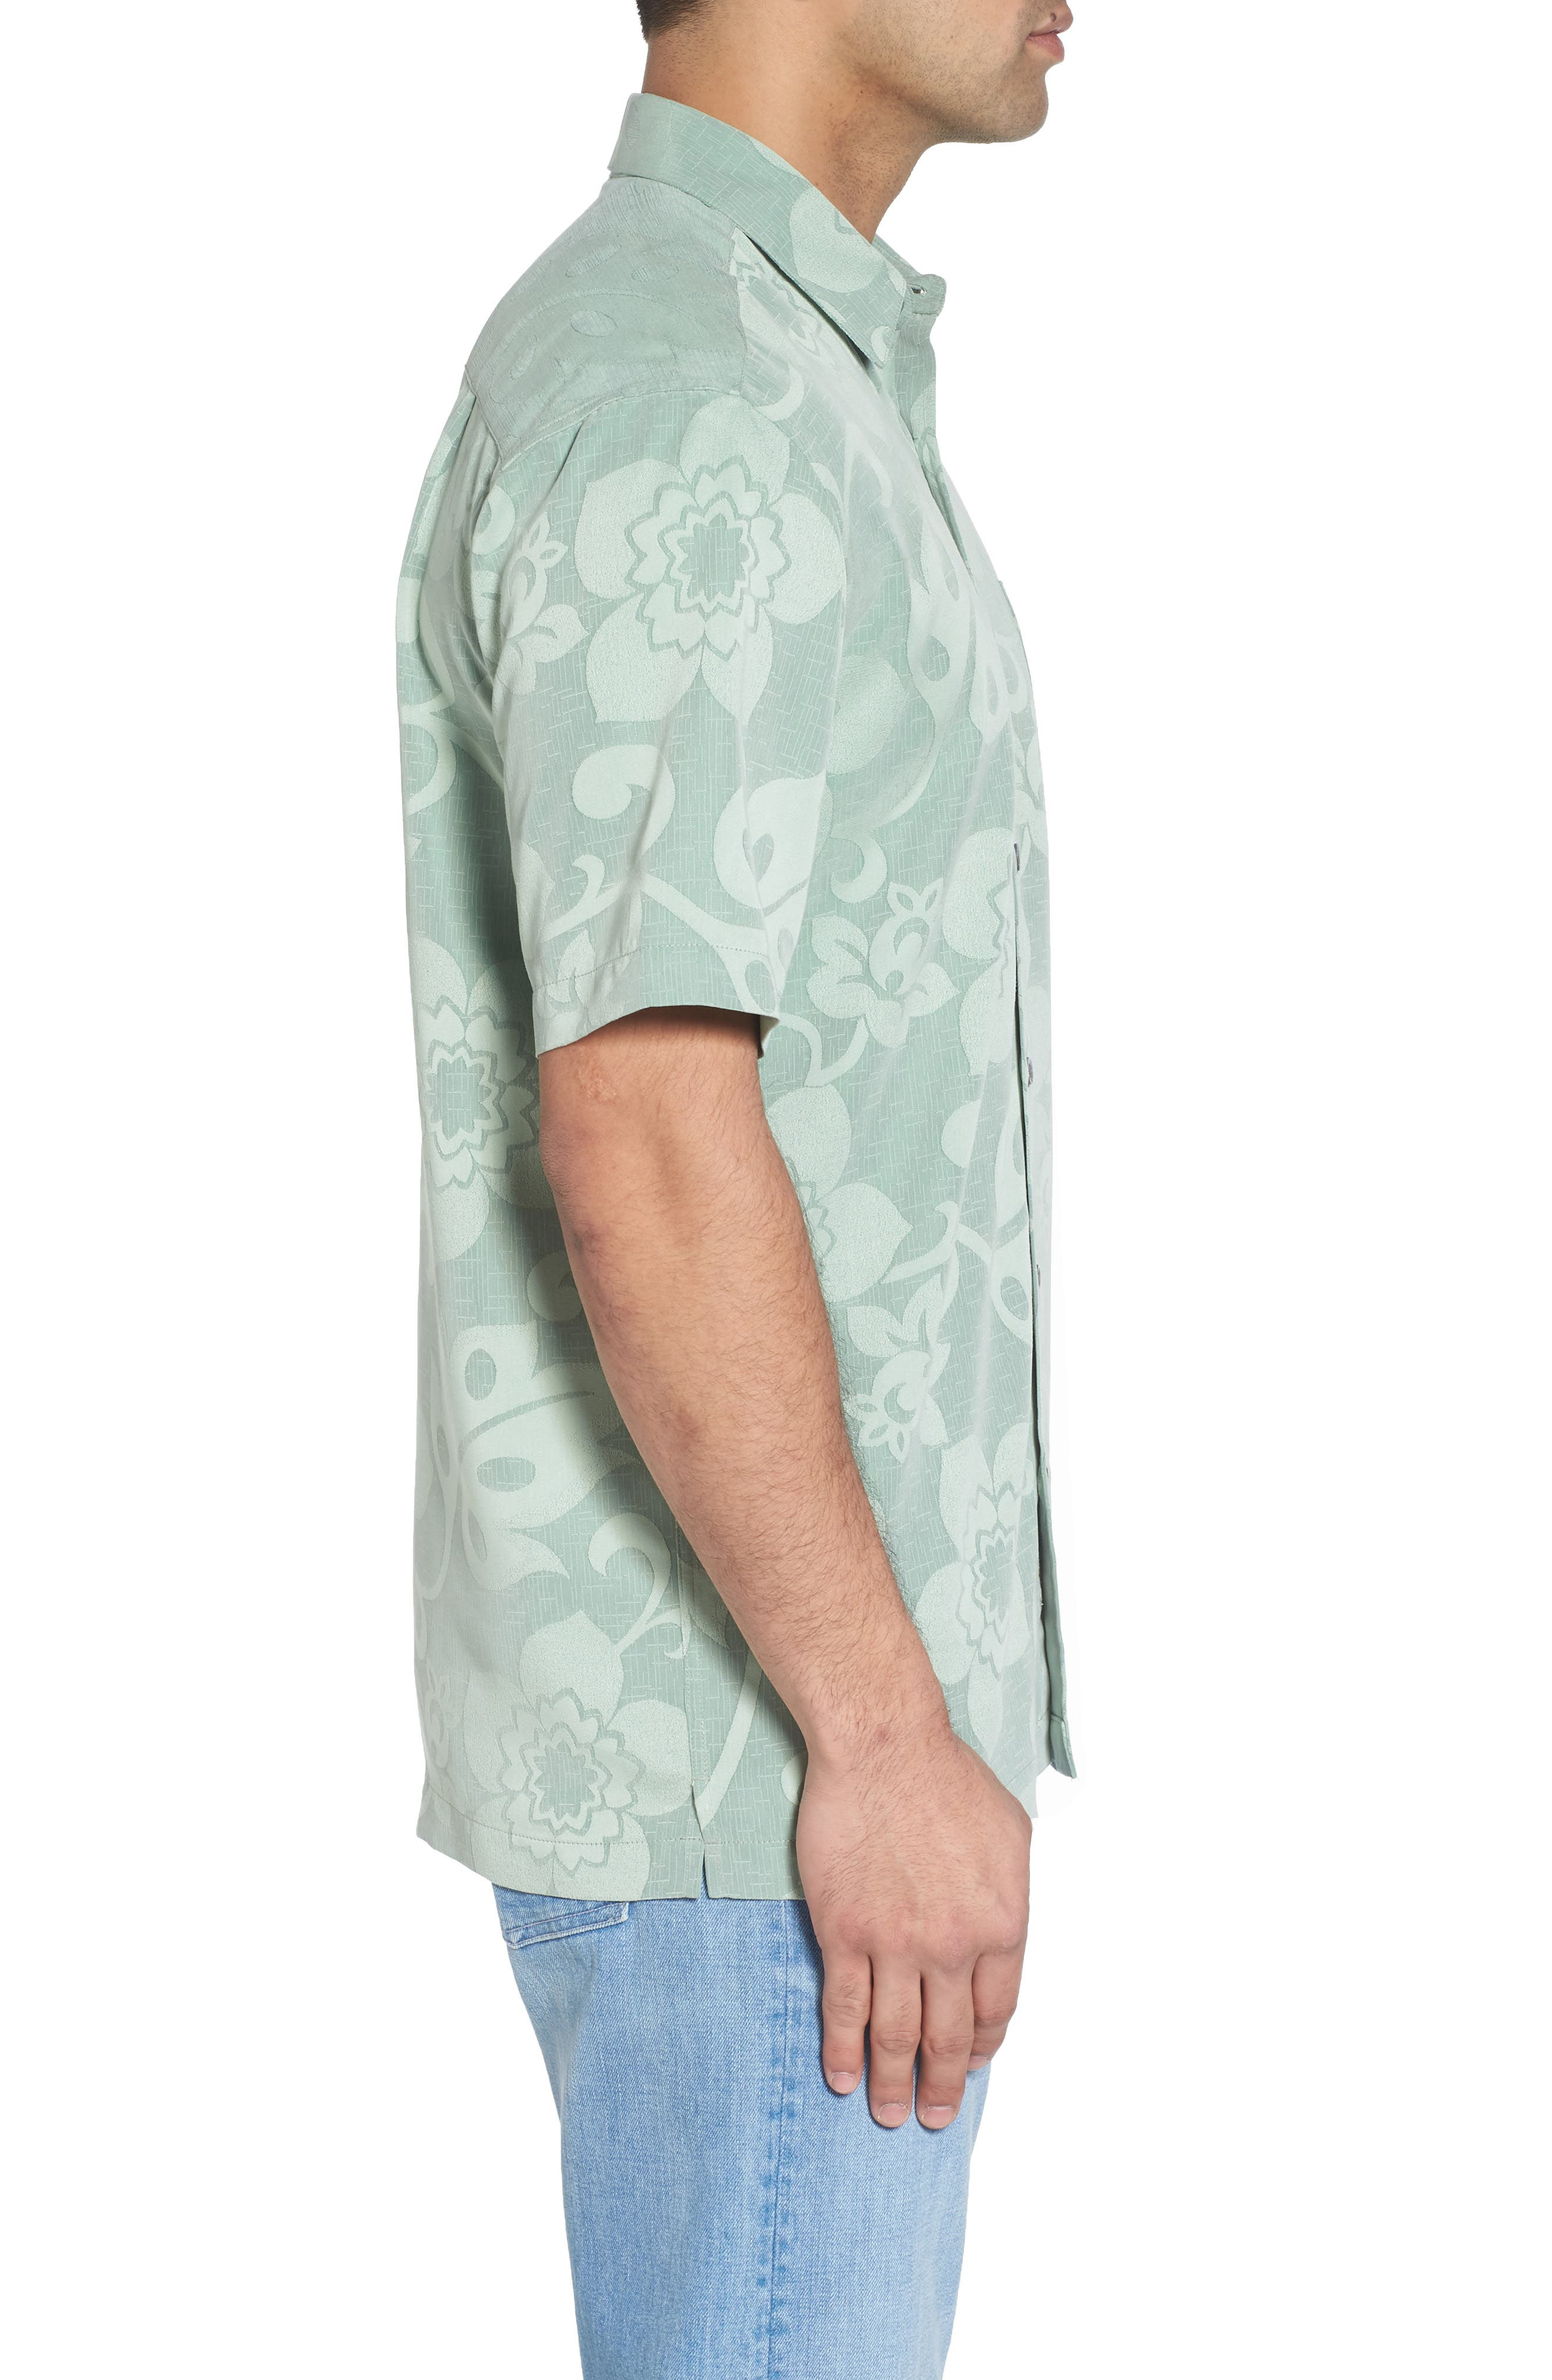 Kalawai Relaxed Fit Camp Shirt,                             Alternate thumbnail 3, color,                             310